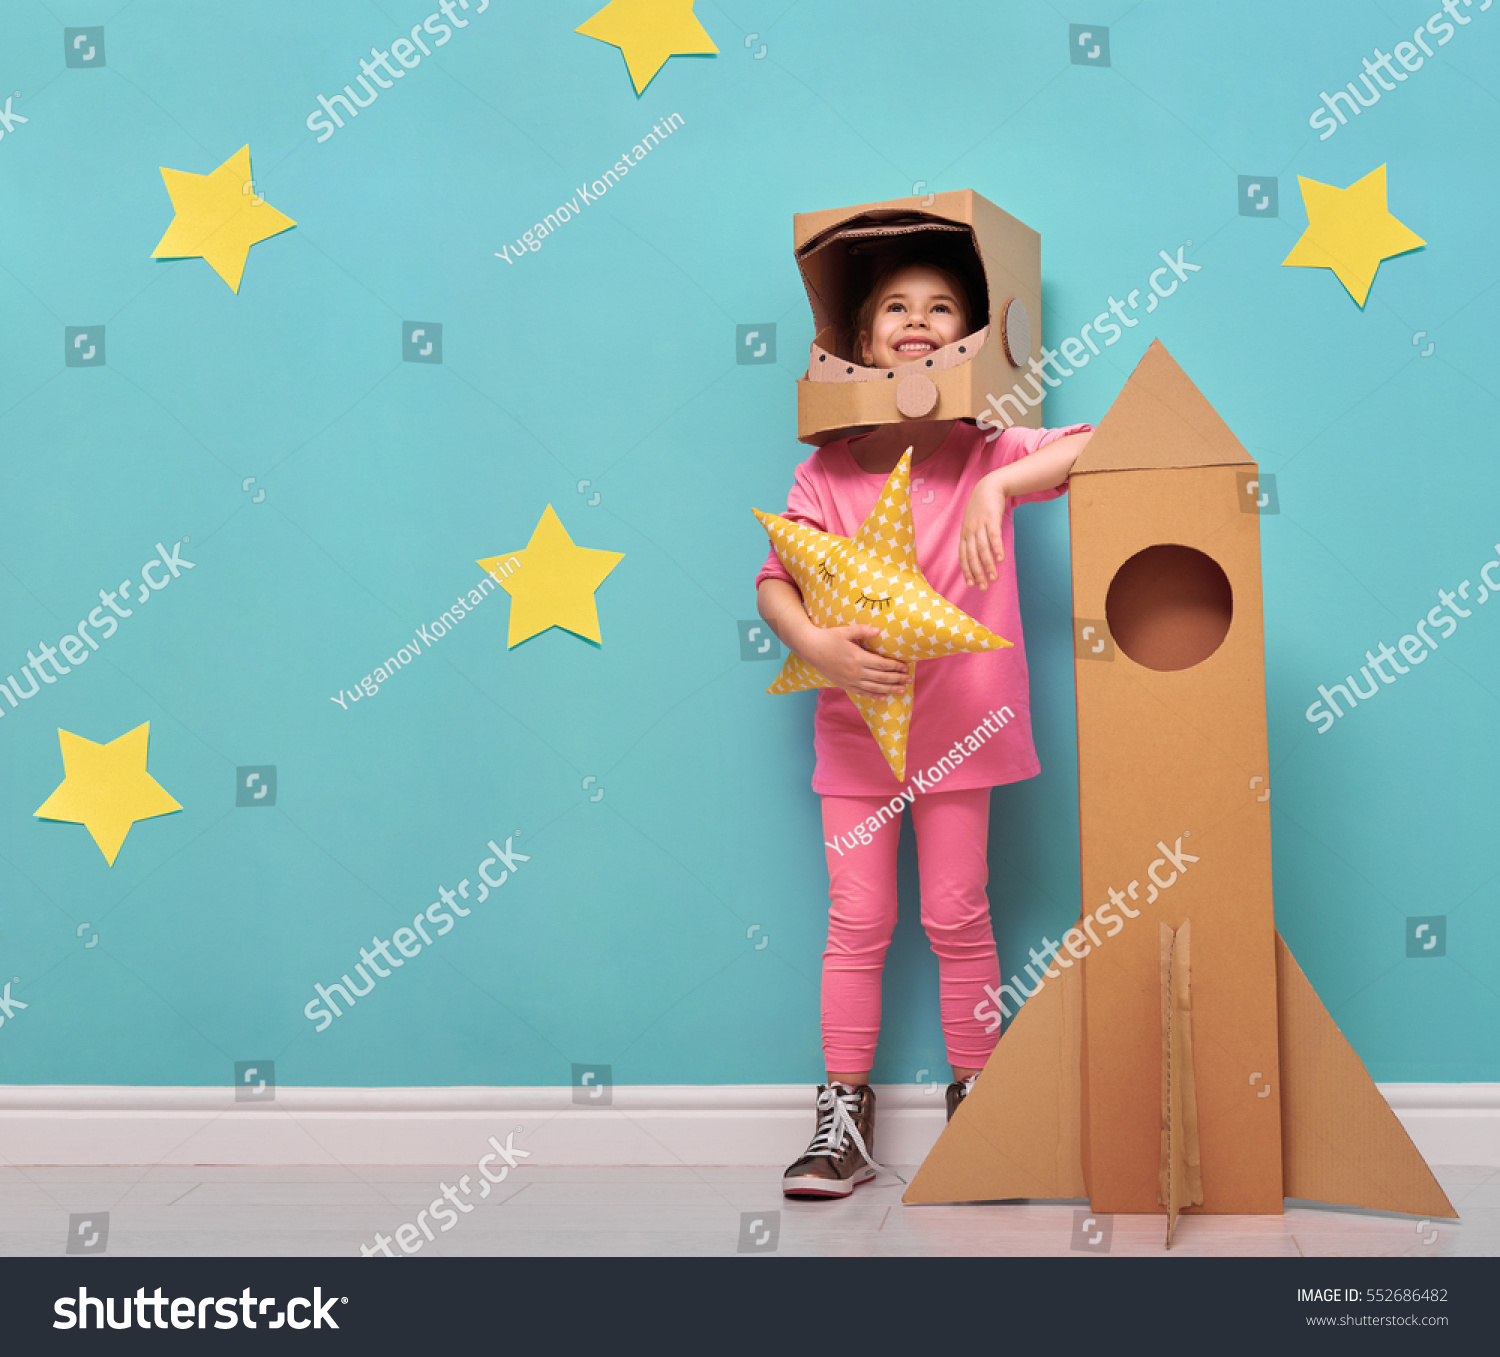 Child girl in an astronaut costume with toy rocket playing and dreaming of be ing a spacemen